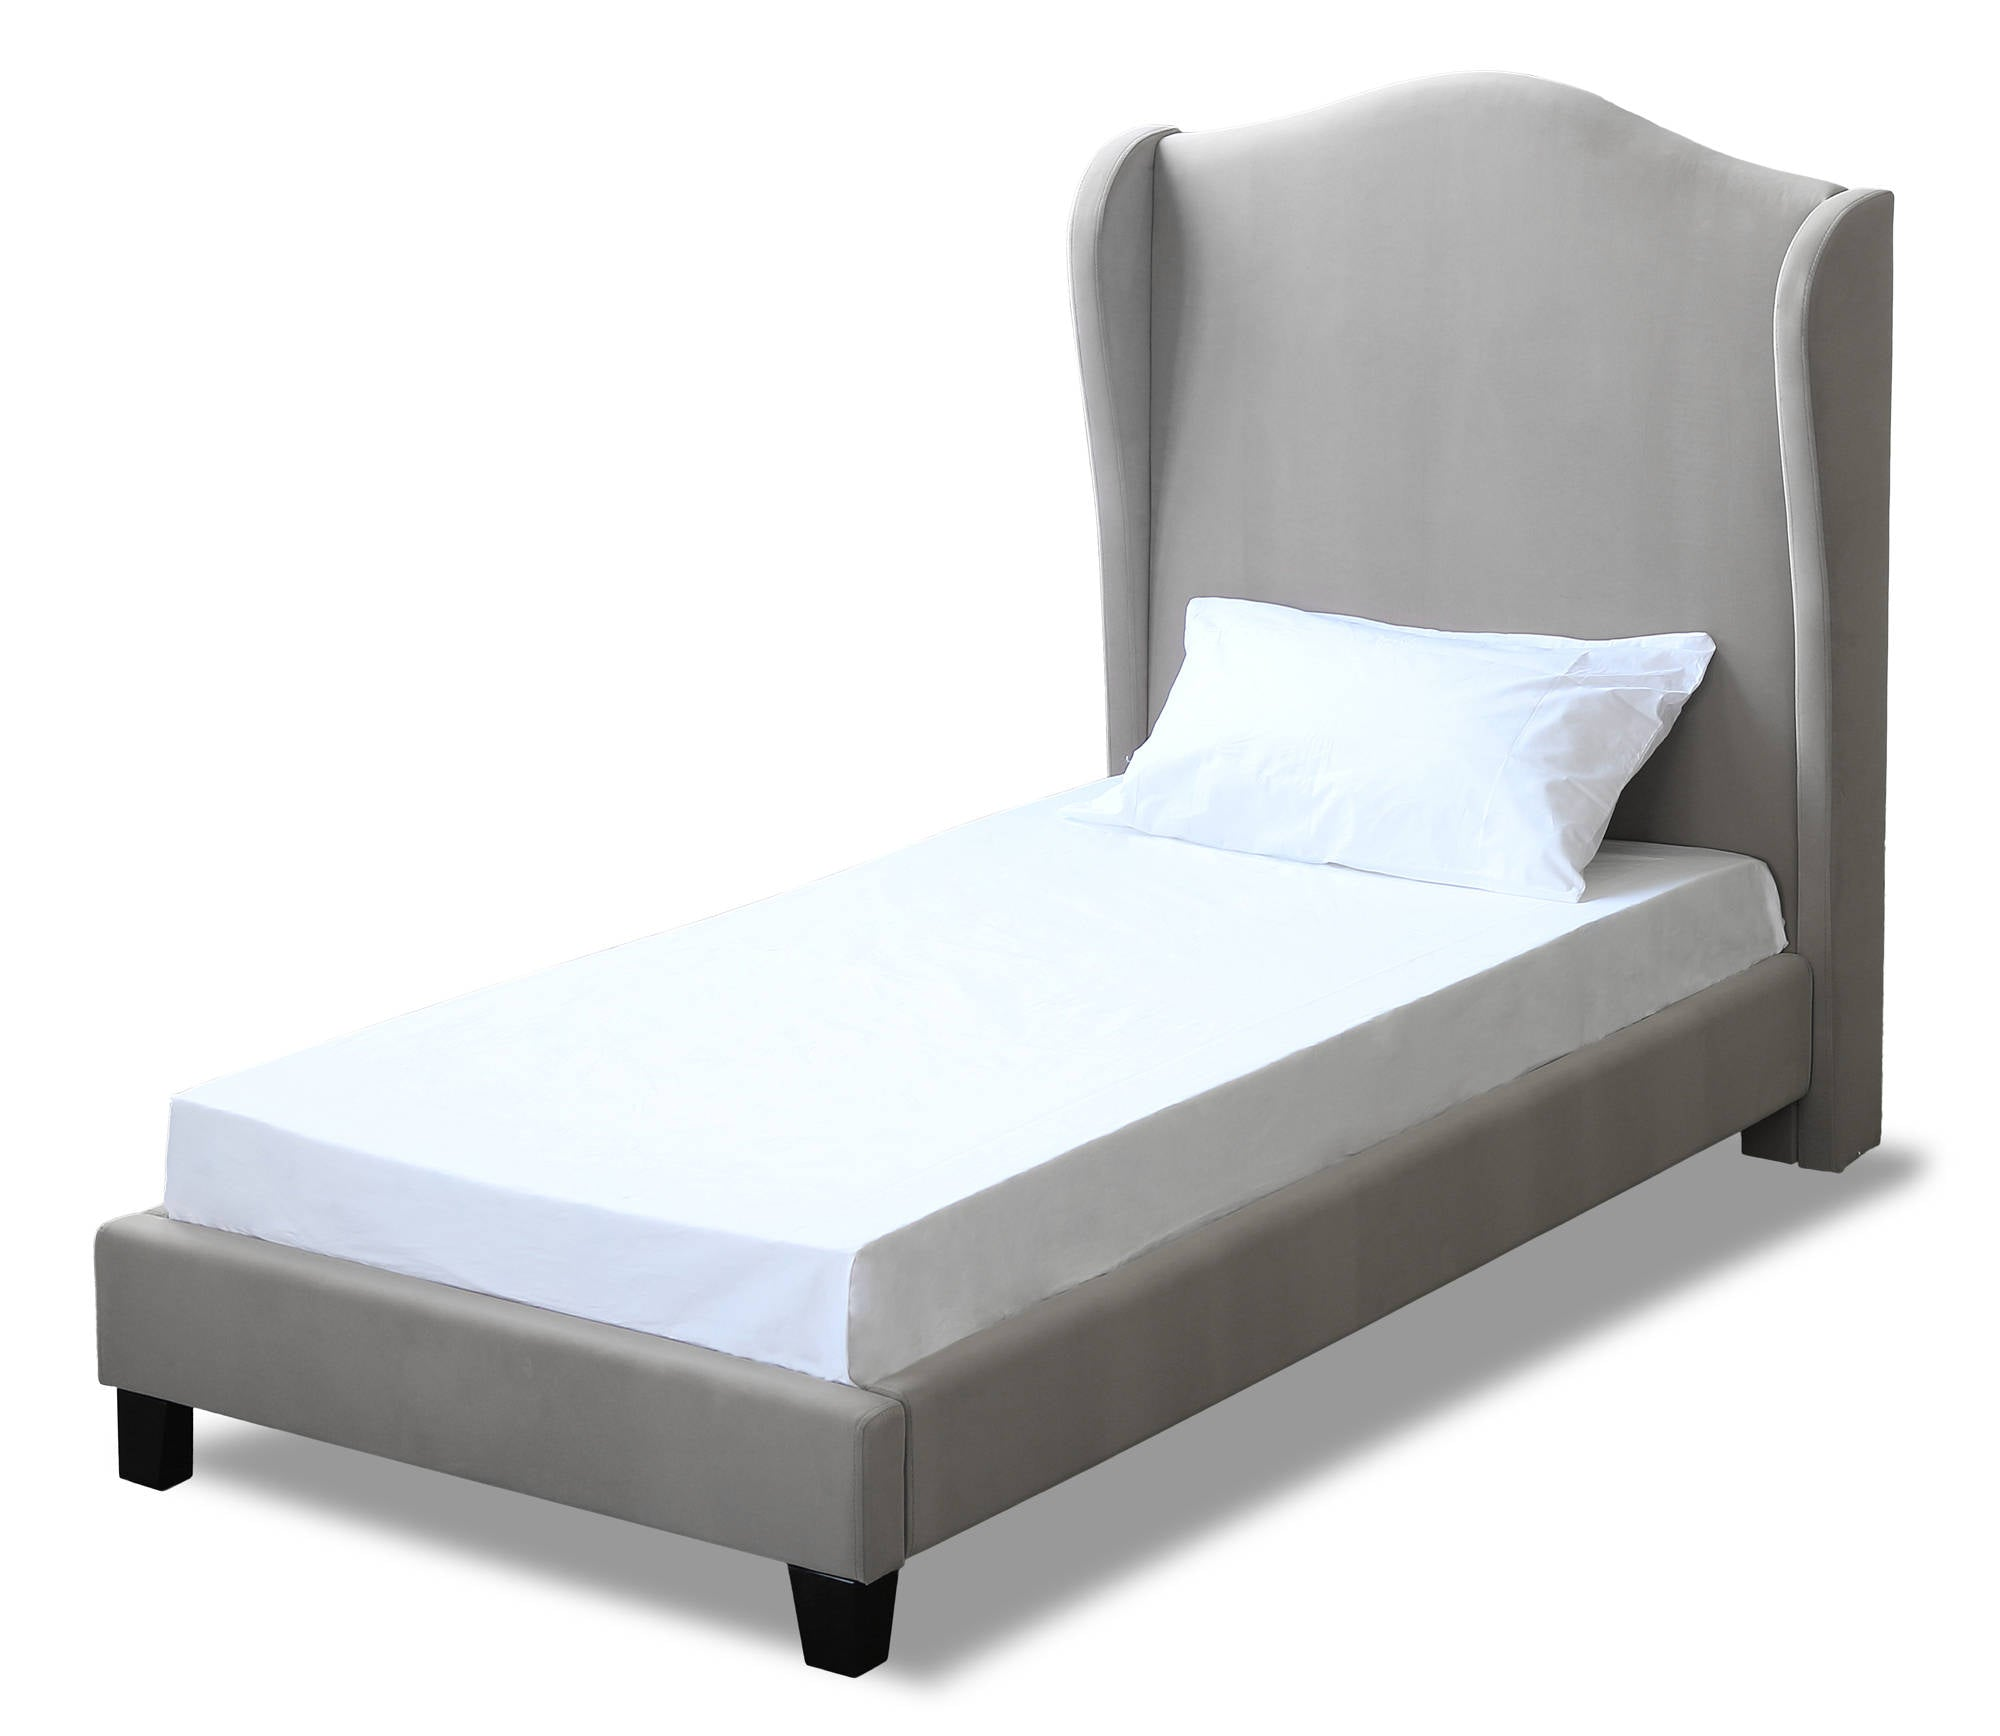 Cheverny Single Bed in Silver - Ezzo